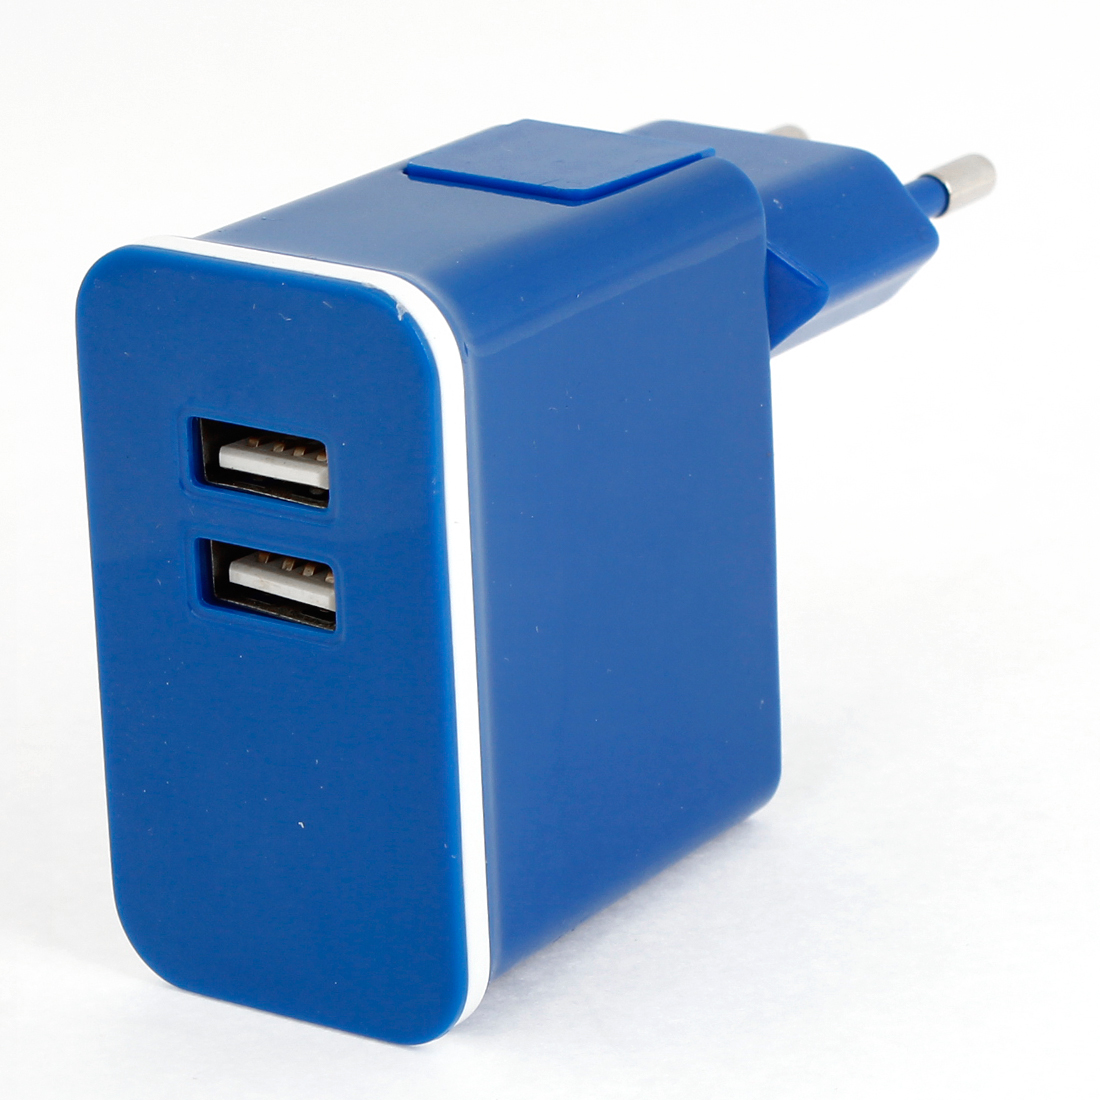 Blue Plastic Shell 2 USB Ports AC Power Adapter Travel Charger EU Plug